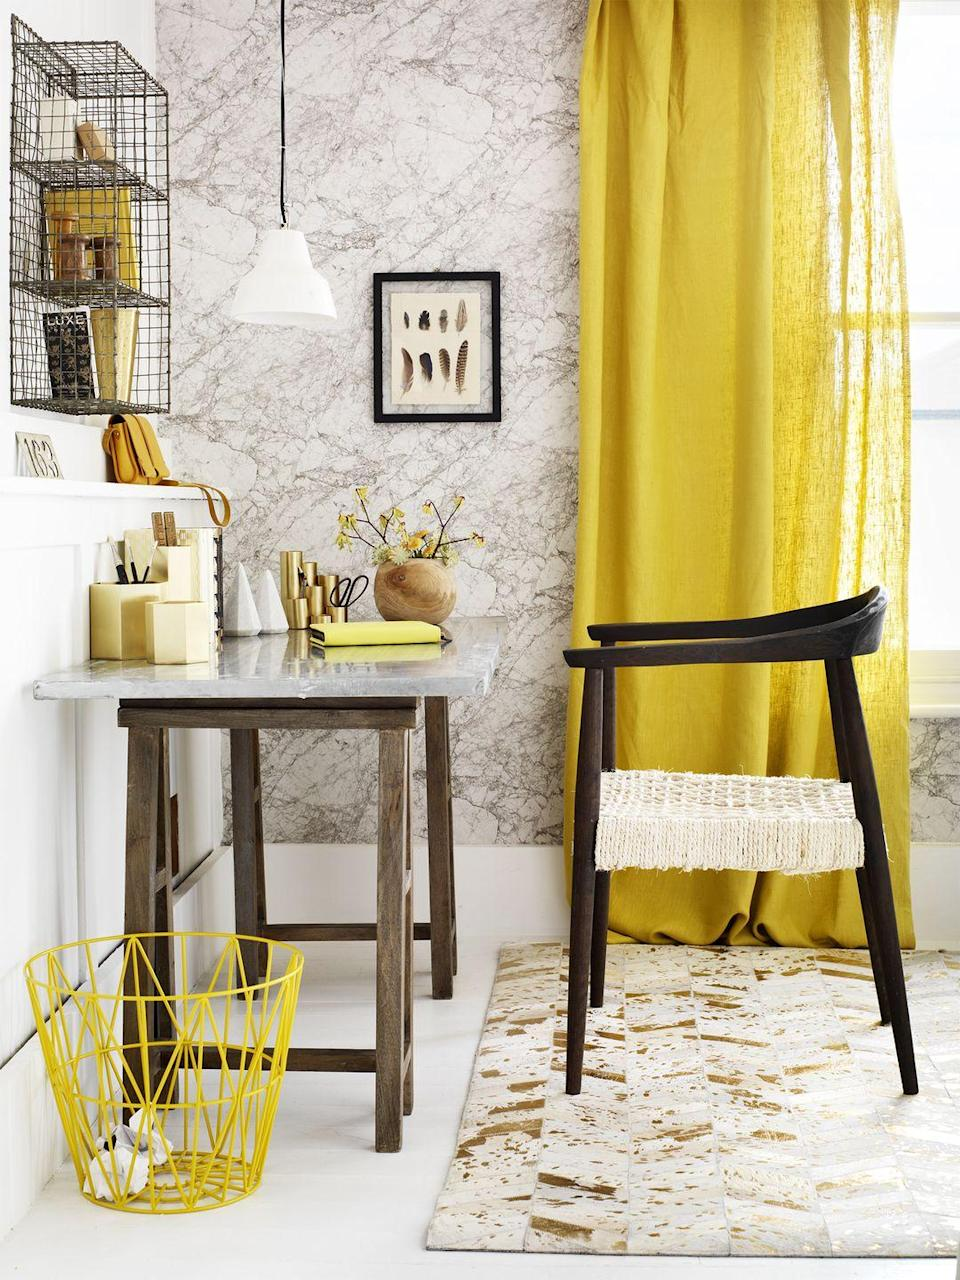 """<p>Wire shelves and baskets are a simple way to encourage you to <a href=""""https://www.goodhousekeeping.com/home/organizing/tips/g656/decluttering-tips/"""" rel=""""nofollow noopener"""" target=""""_blank"""" data-ylk=""""slk:keep clutter at bay"""" class=""""link rapid-noclick-resp"""">keep clutter at bay</a> because, well, you see everything. You can also use 'em to incorporate another color into your space — just add paint. </p>"""